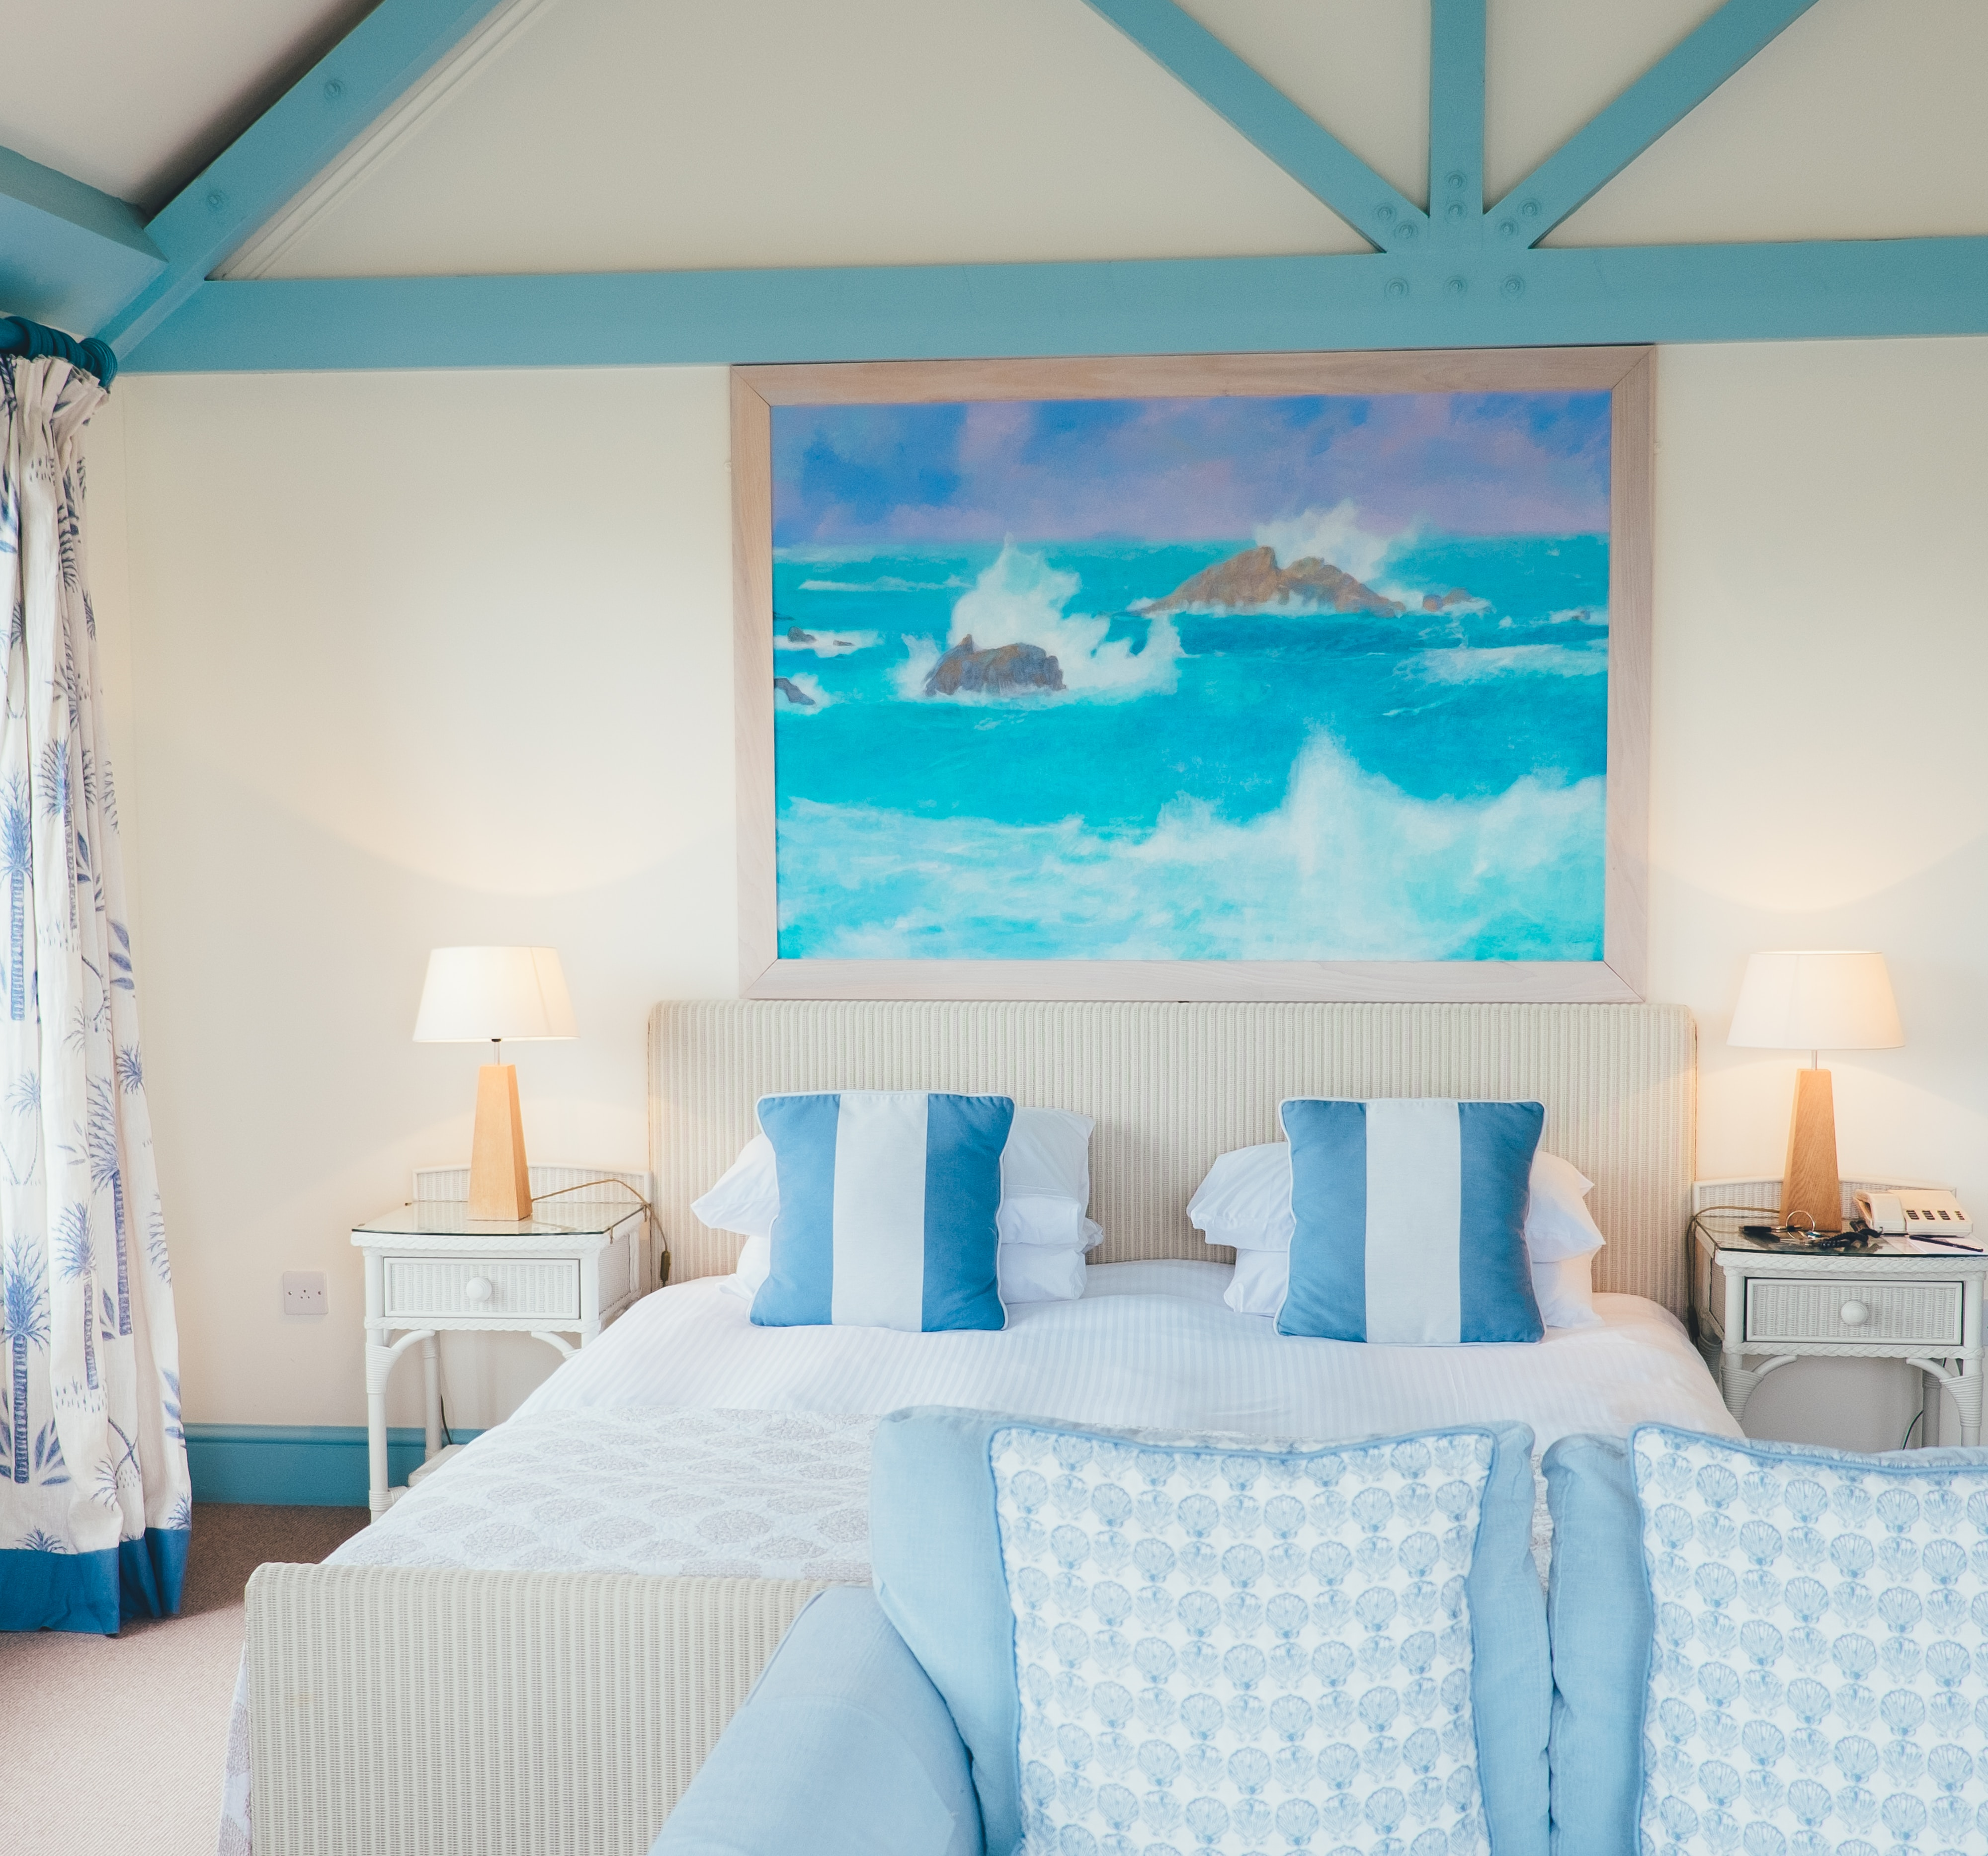 How To Get That Beach-House Look (Minus the Kitsch)